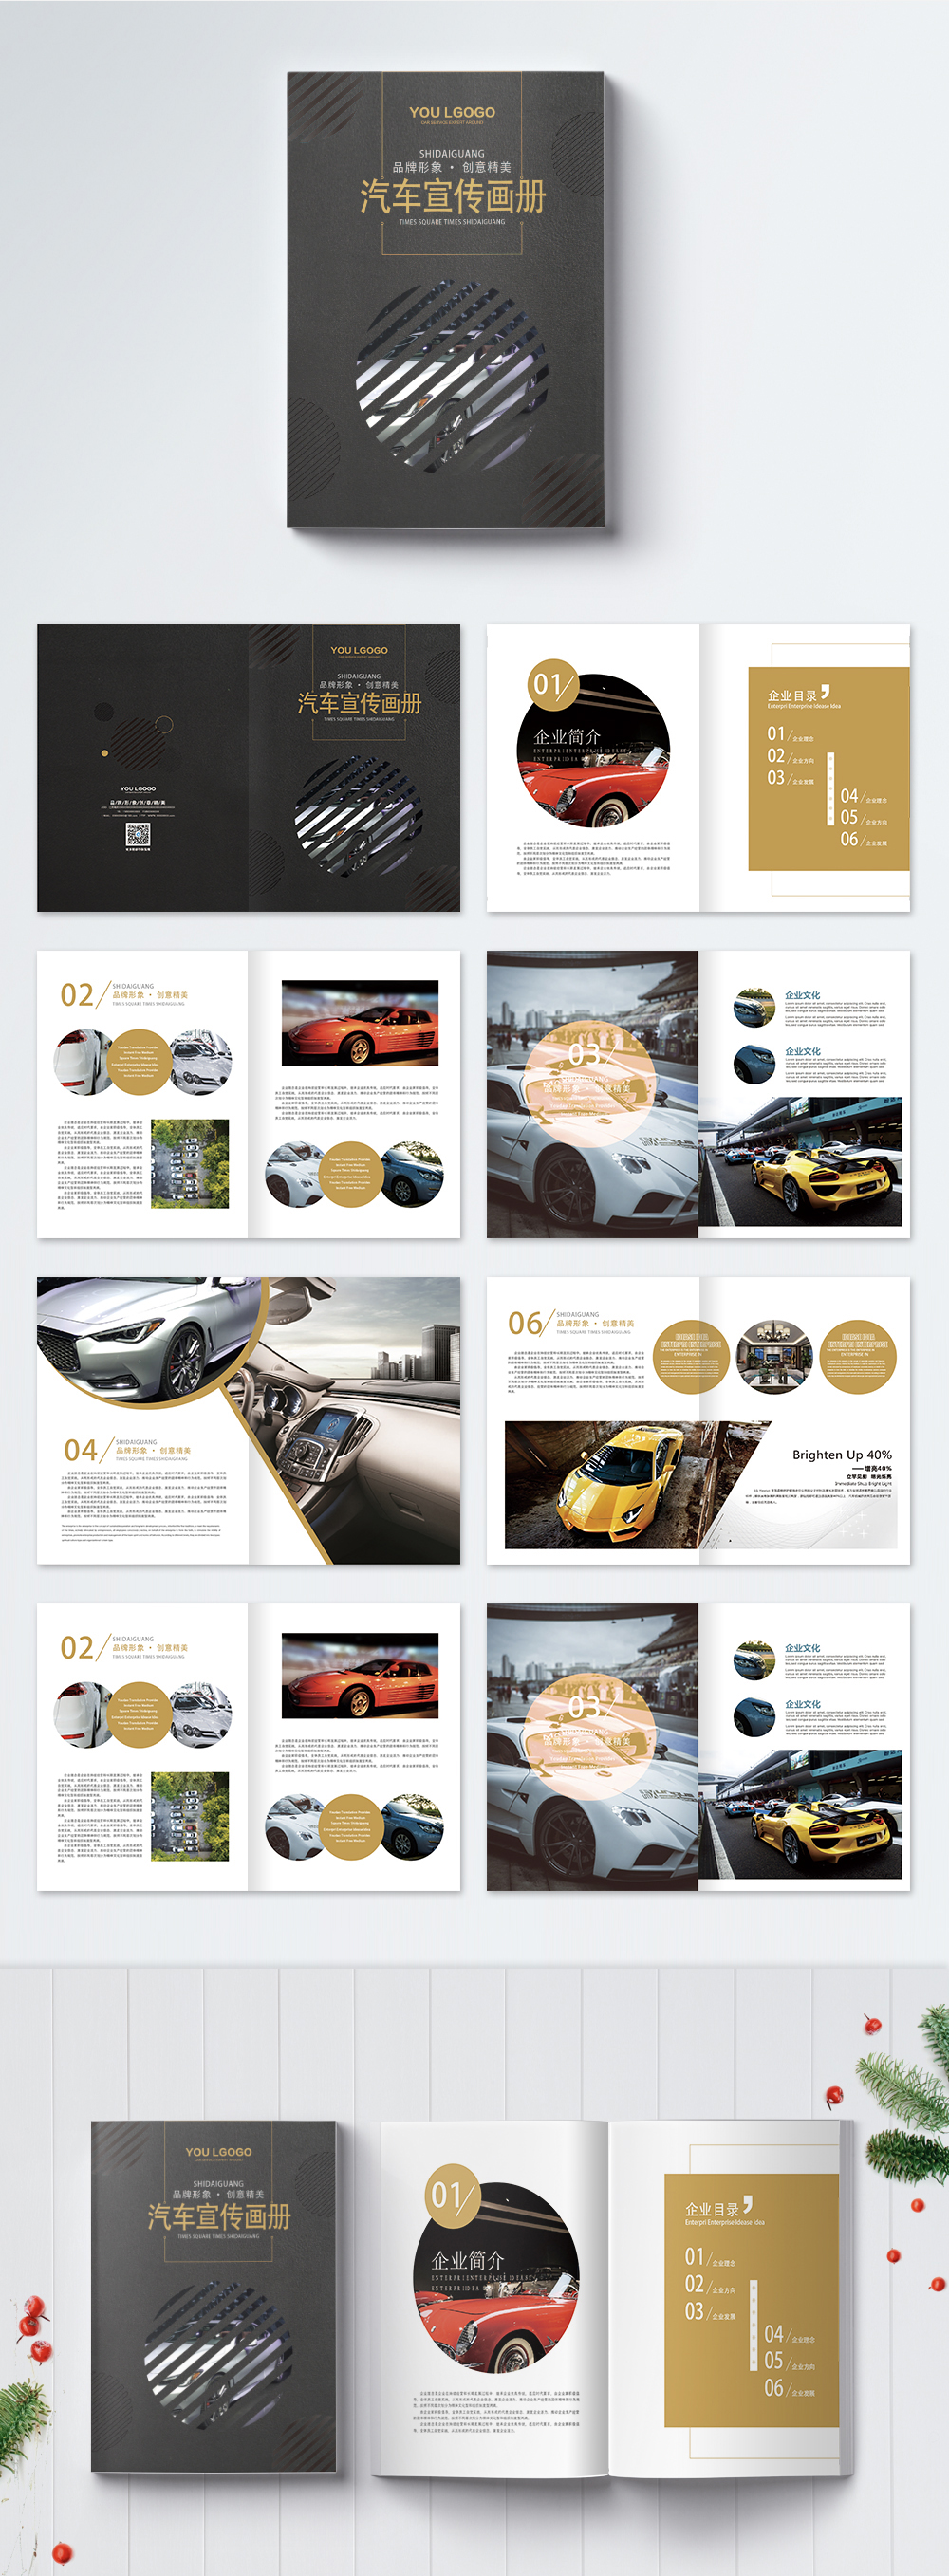 High End Automotive Product Booklet Design Template Image Picture Free Download 400420736 Lovepik Com,How Much Does It Cost To Design A Website